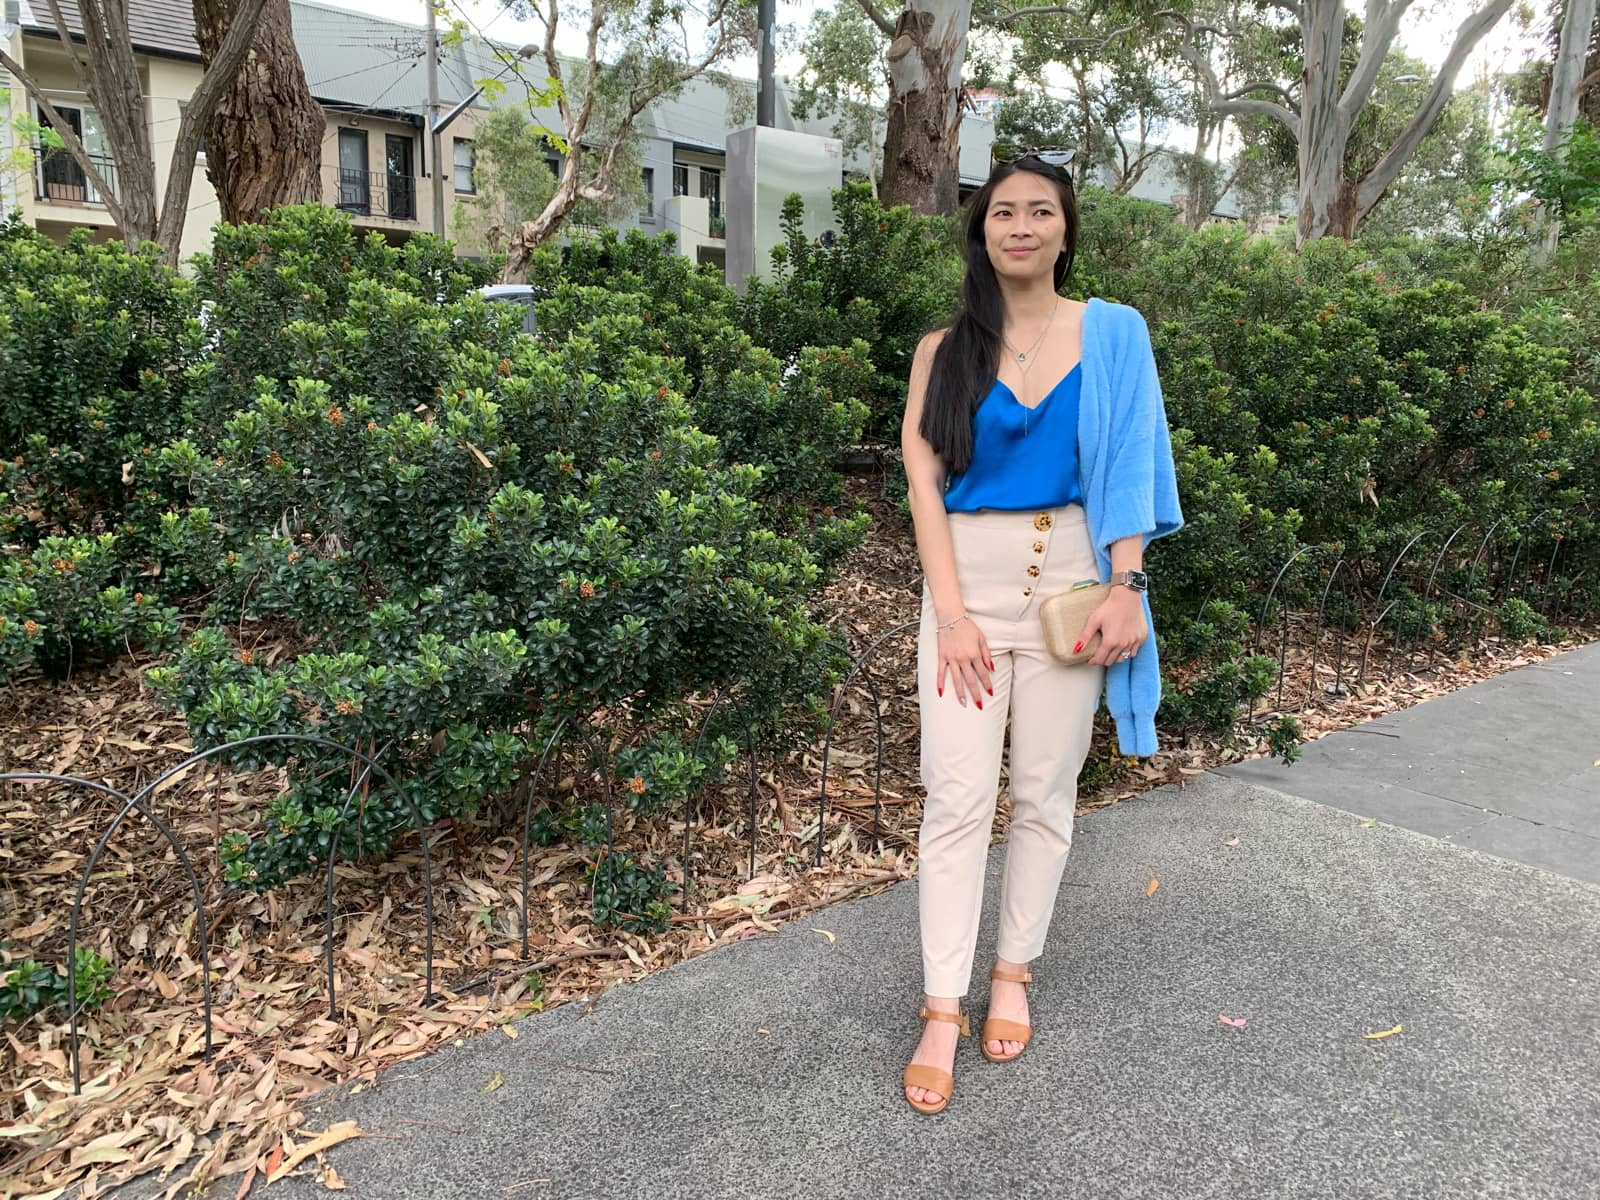 The same woman in the previous photos on this page, in the same outfit. She is standing in front of shrubbery and has one hand clutching her handbag and the other resting on her upper thigh